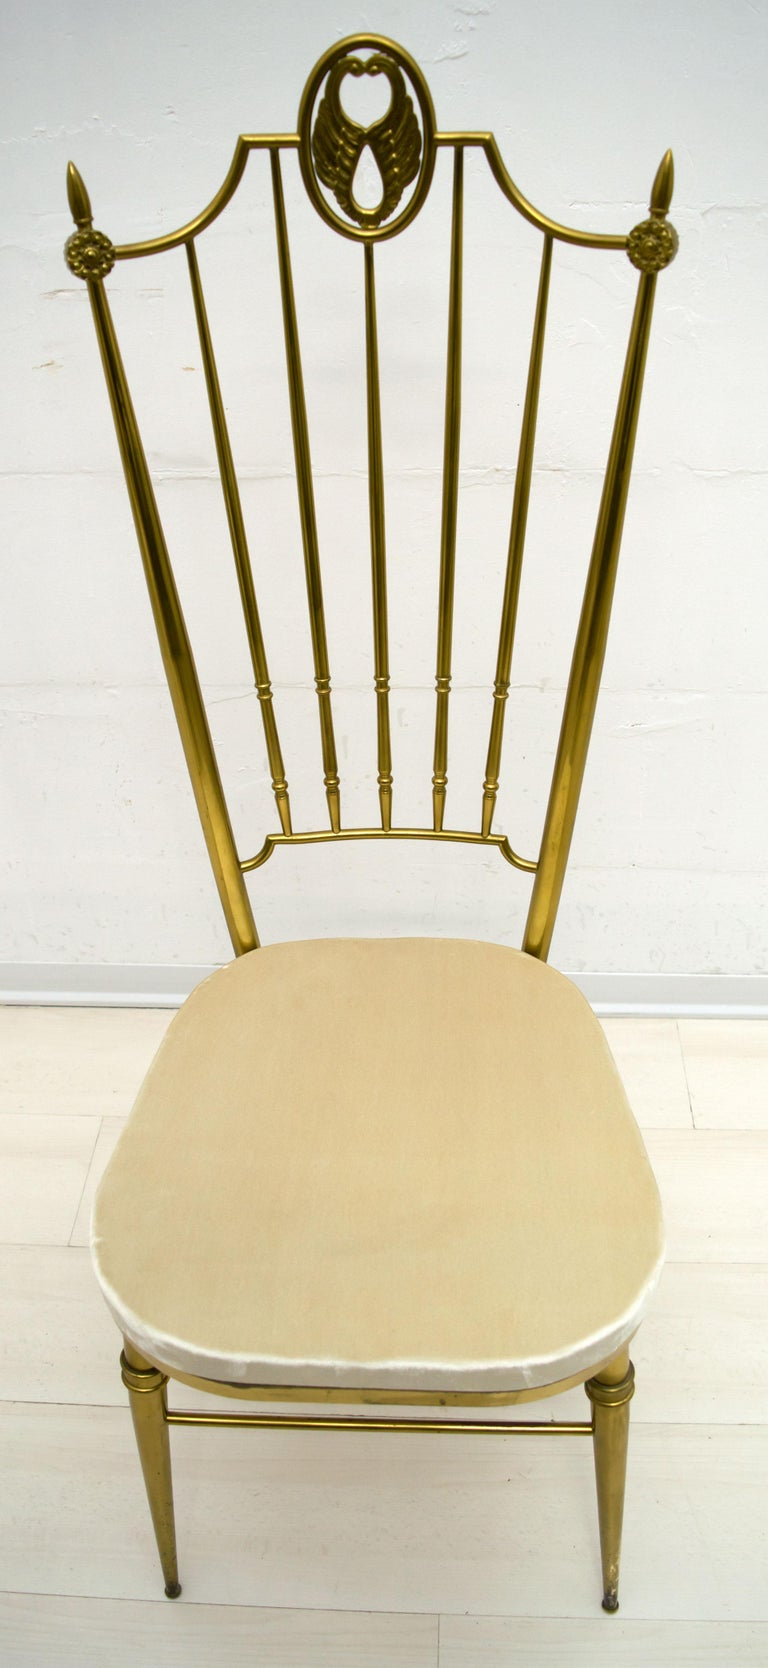 After Gio Ponti Mid-Century Modern Italian Brass High Back Chairs, 1950s For Sale 4